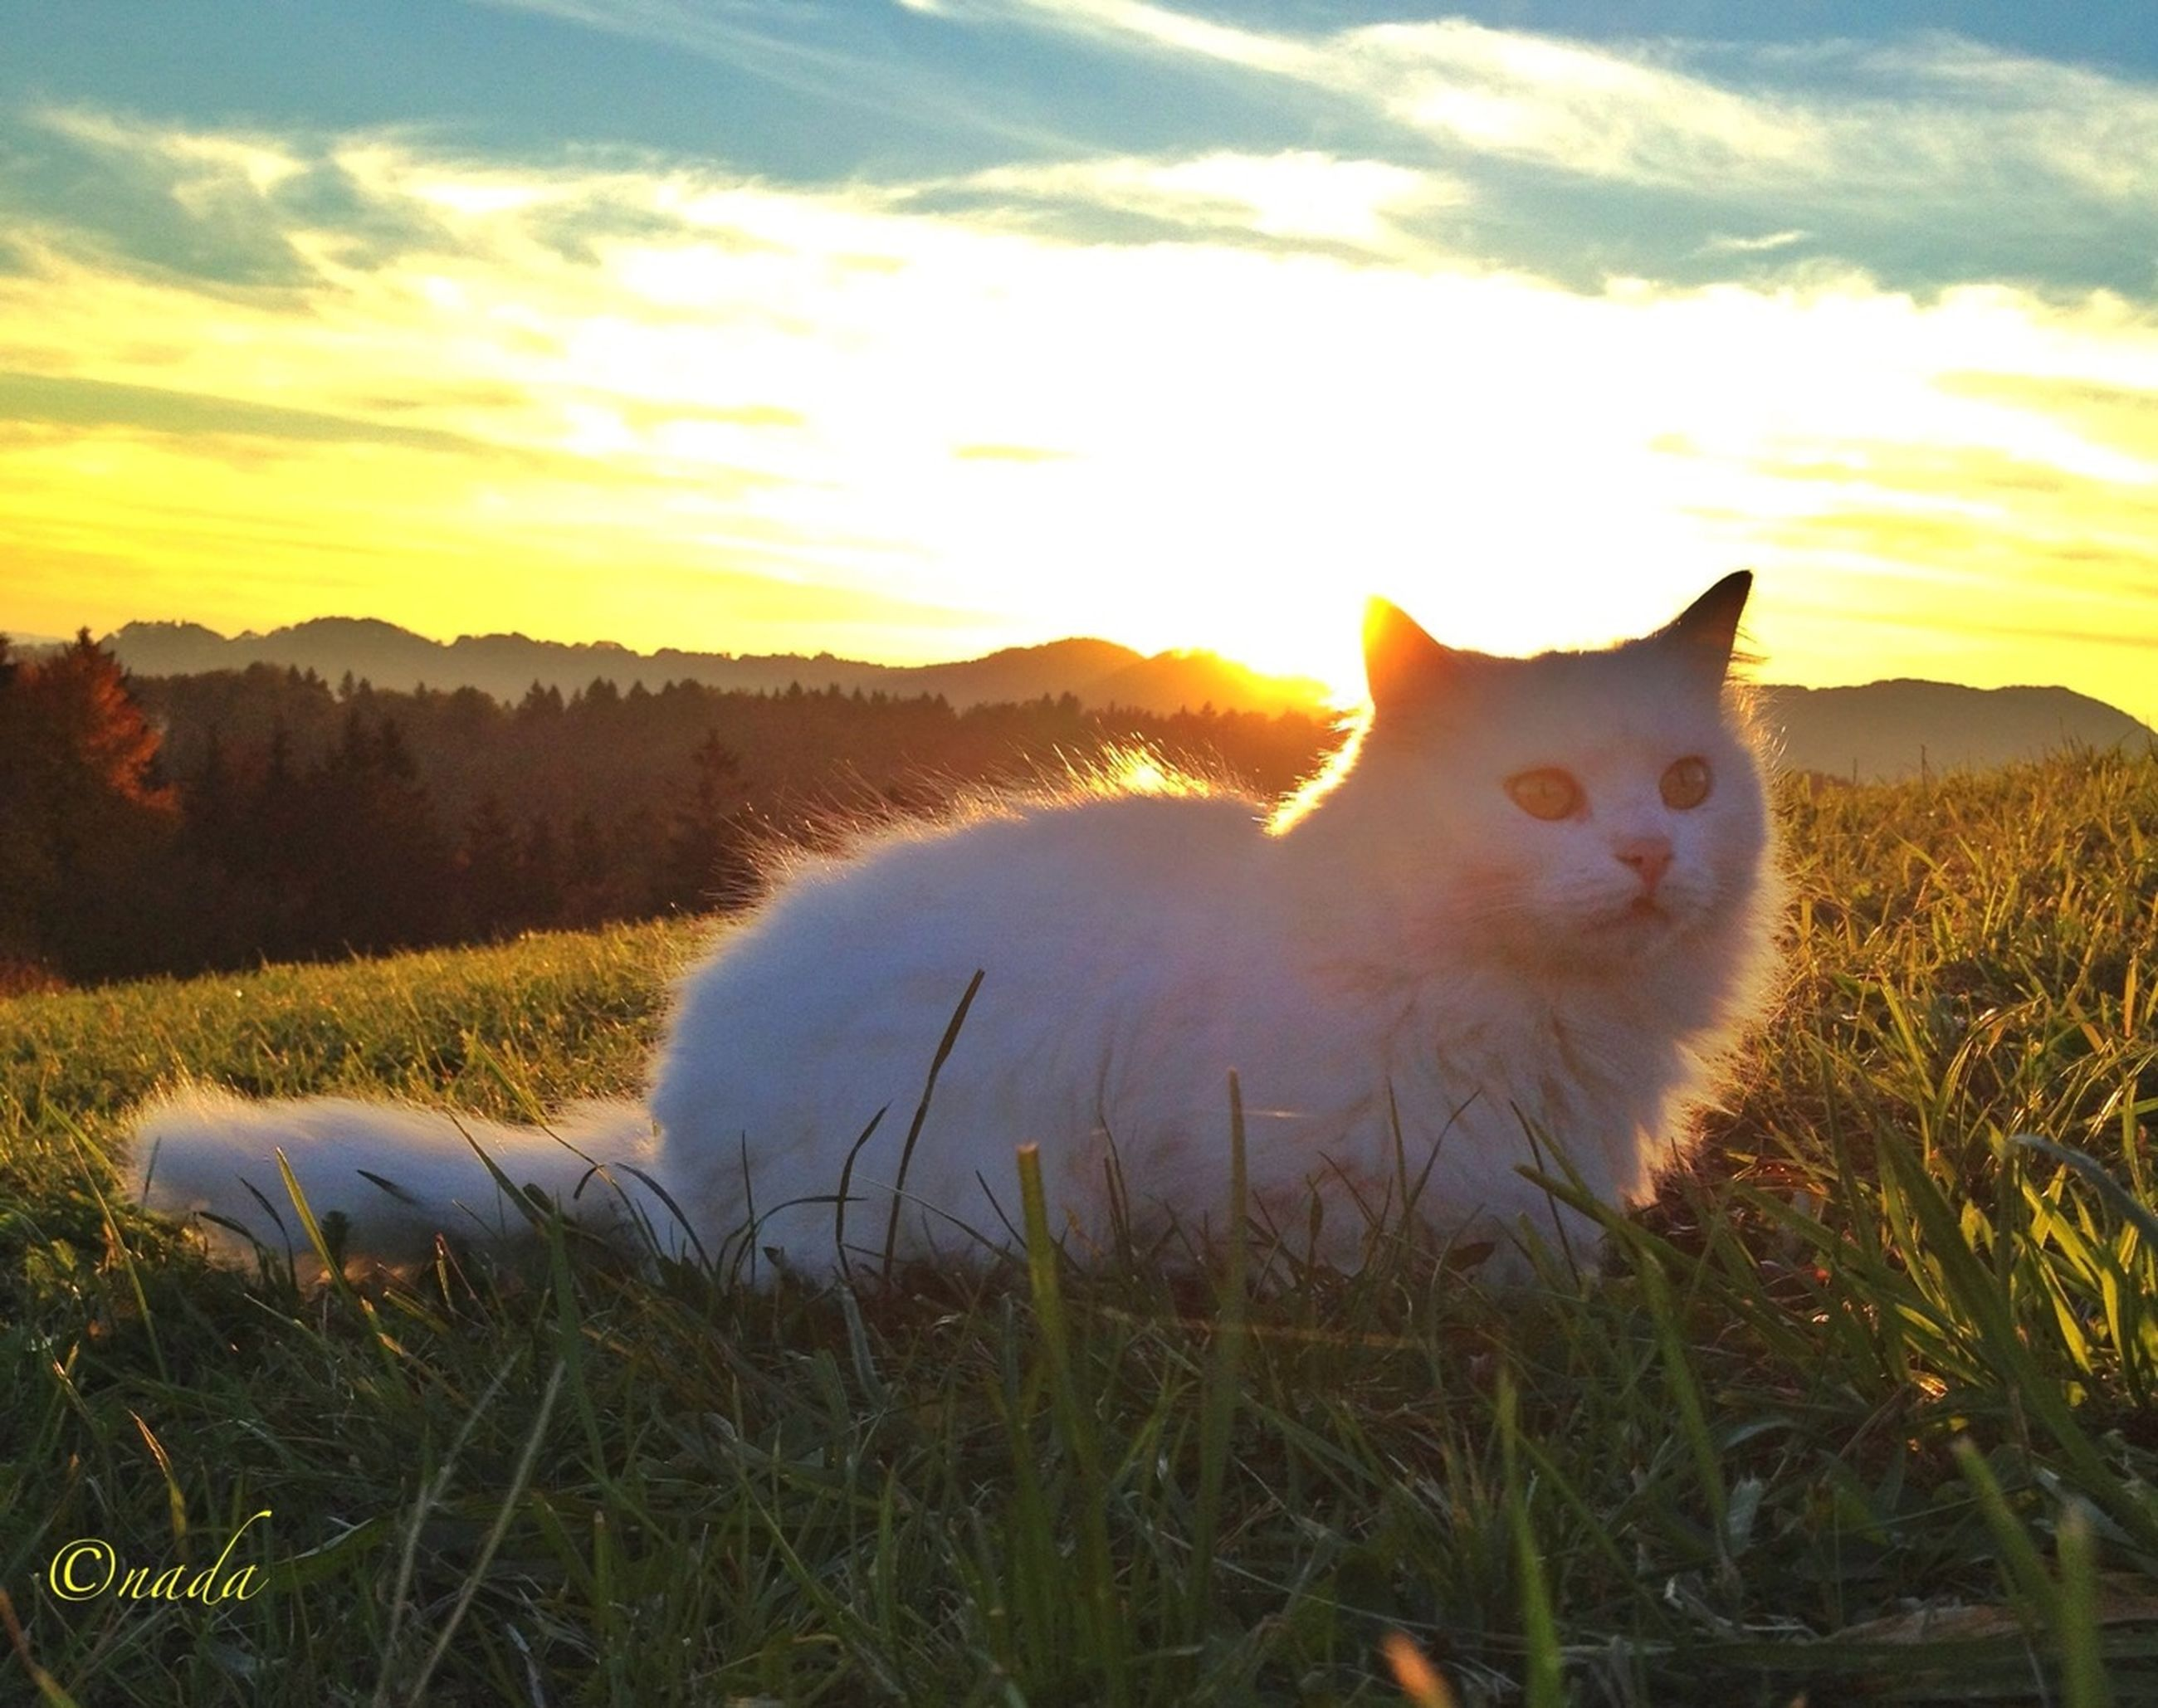 domestic animals, animal themes, mammal, pets, one animal, grass, sky, field, sunset, domestic cat, cloud - sky, grassy, nature, cat, landscape, feline, plant, cloud, beauty in nature, no people